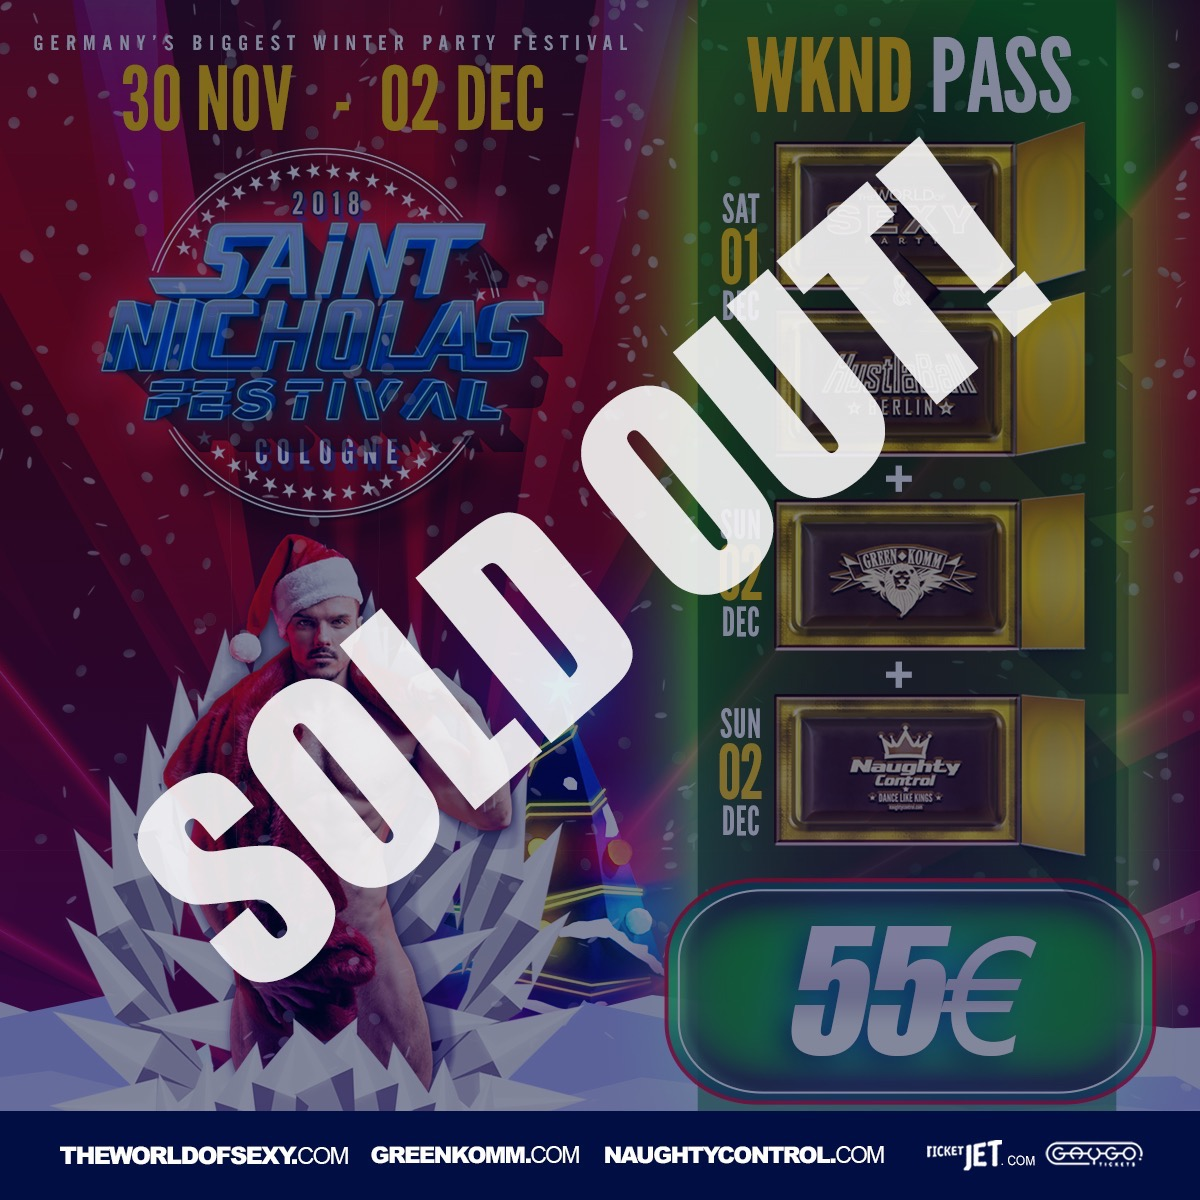 , +++ St.Nicholas Festival WKND PASS is SOLD OUT  +++